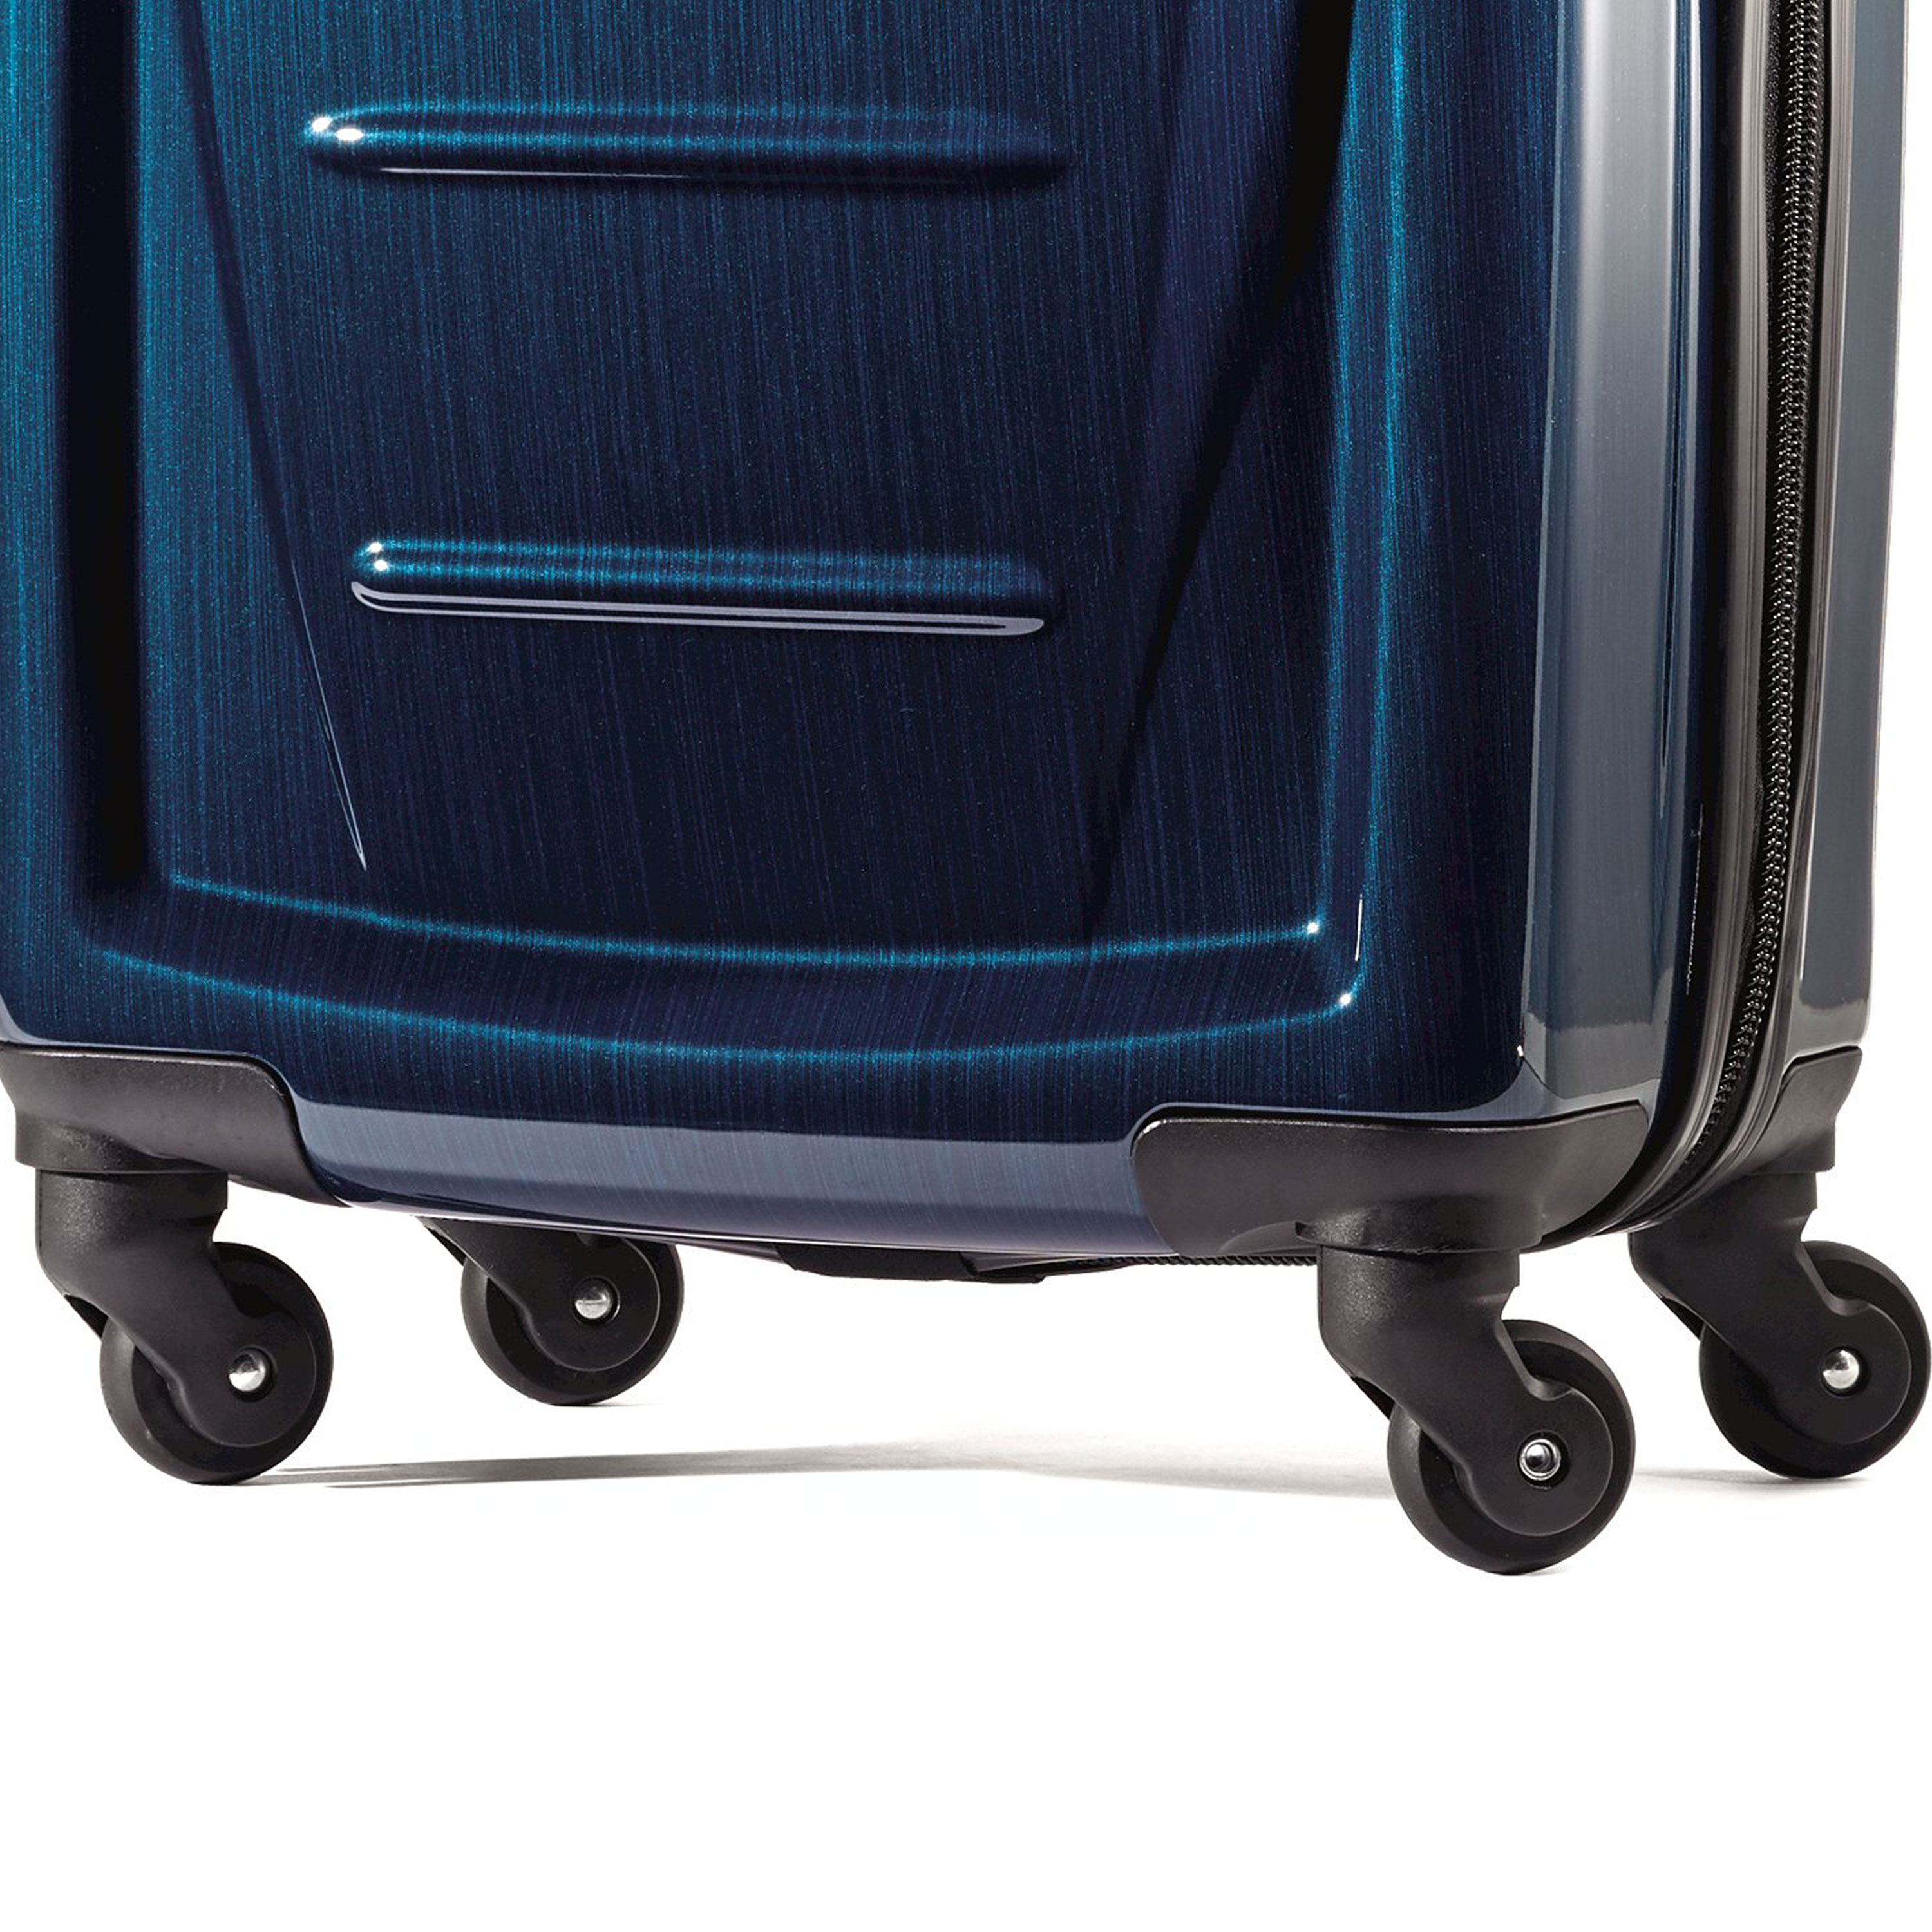 Samsonite-Winfield-2-Fashion-Spinner-Luggage thumbnail 19